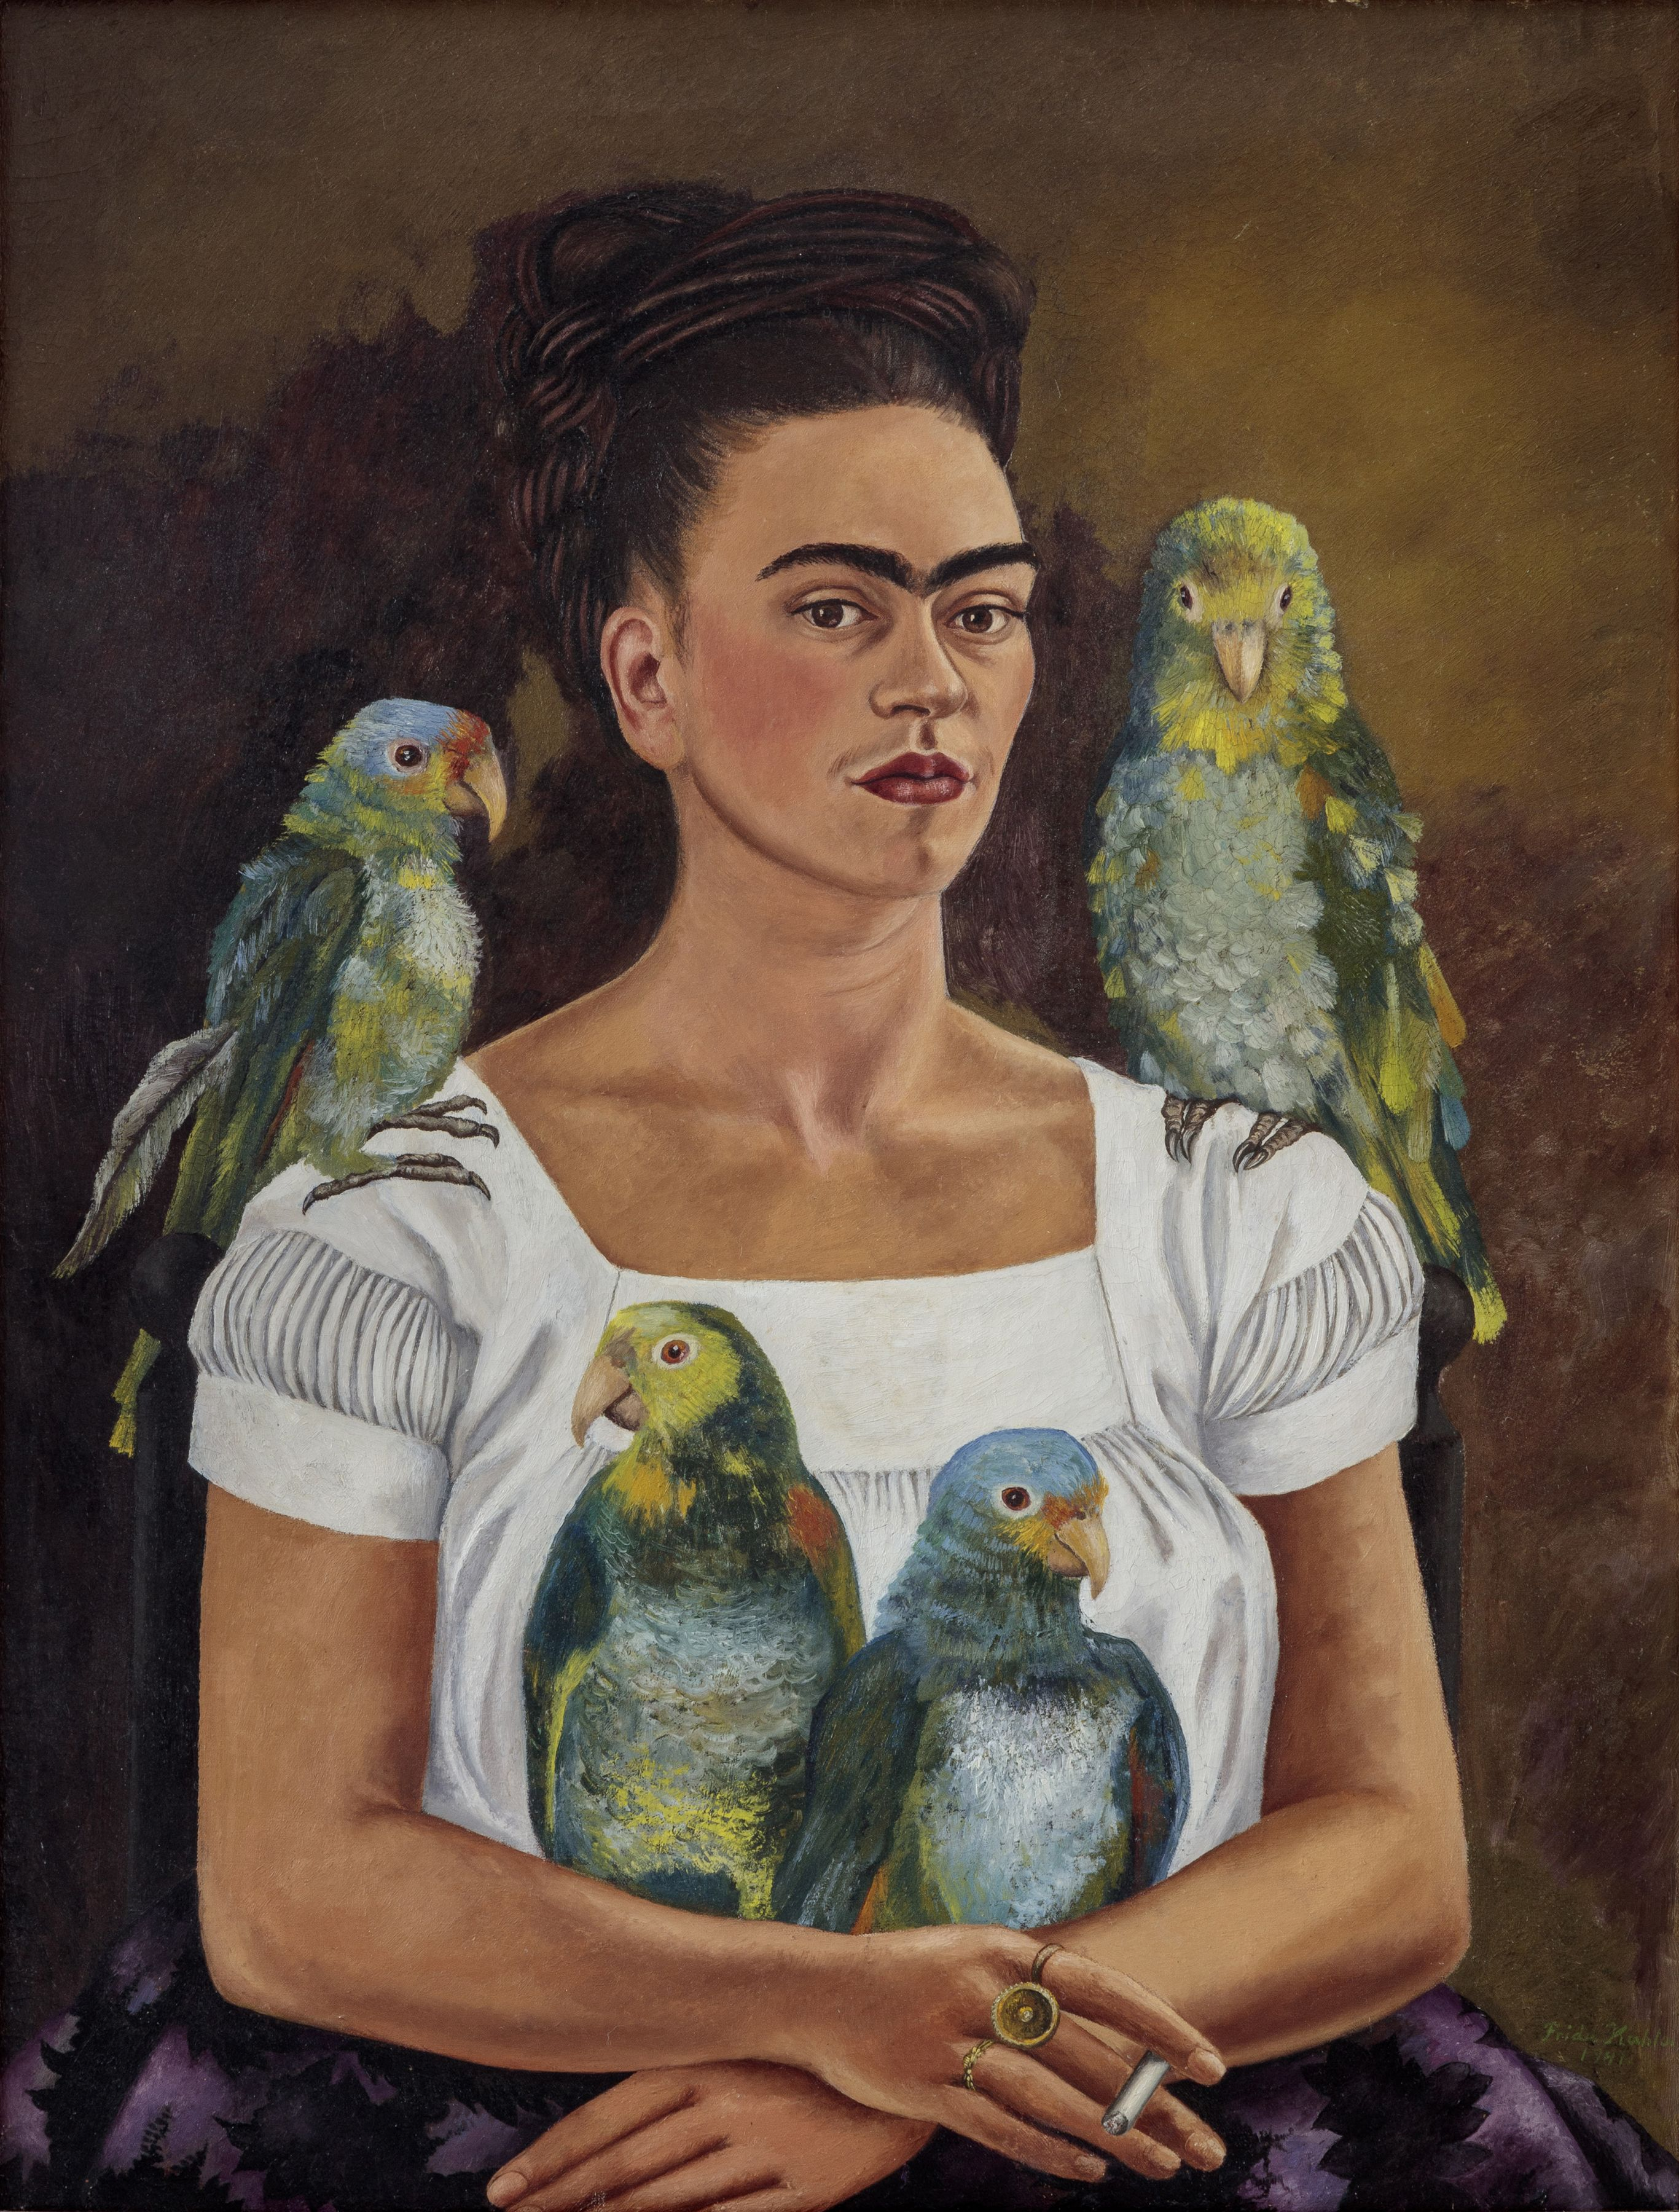 Frida Kahlo. Me and My Parrots. 1941. Oil on canvas, 82 by 62.8 cm (32¼ by 24¾ in.). Private Collection © 2019 Banco de México Diego Rivera Frida Kahlo Museums Trust, Mexico, D.F. / Artists Rights Society (ARS), New York